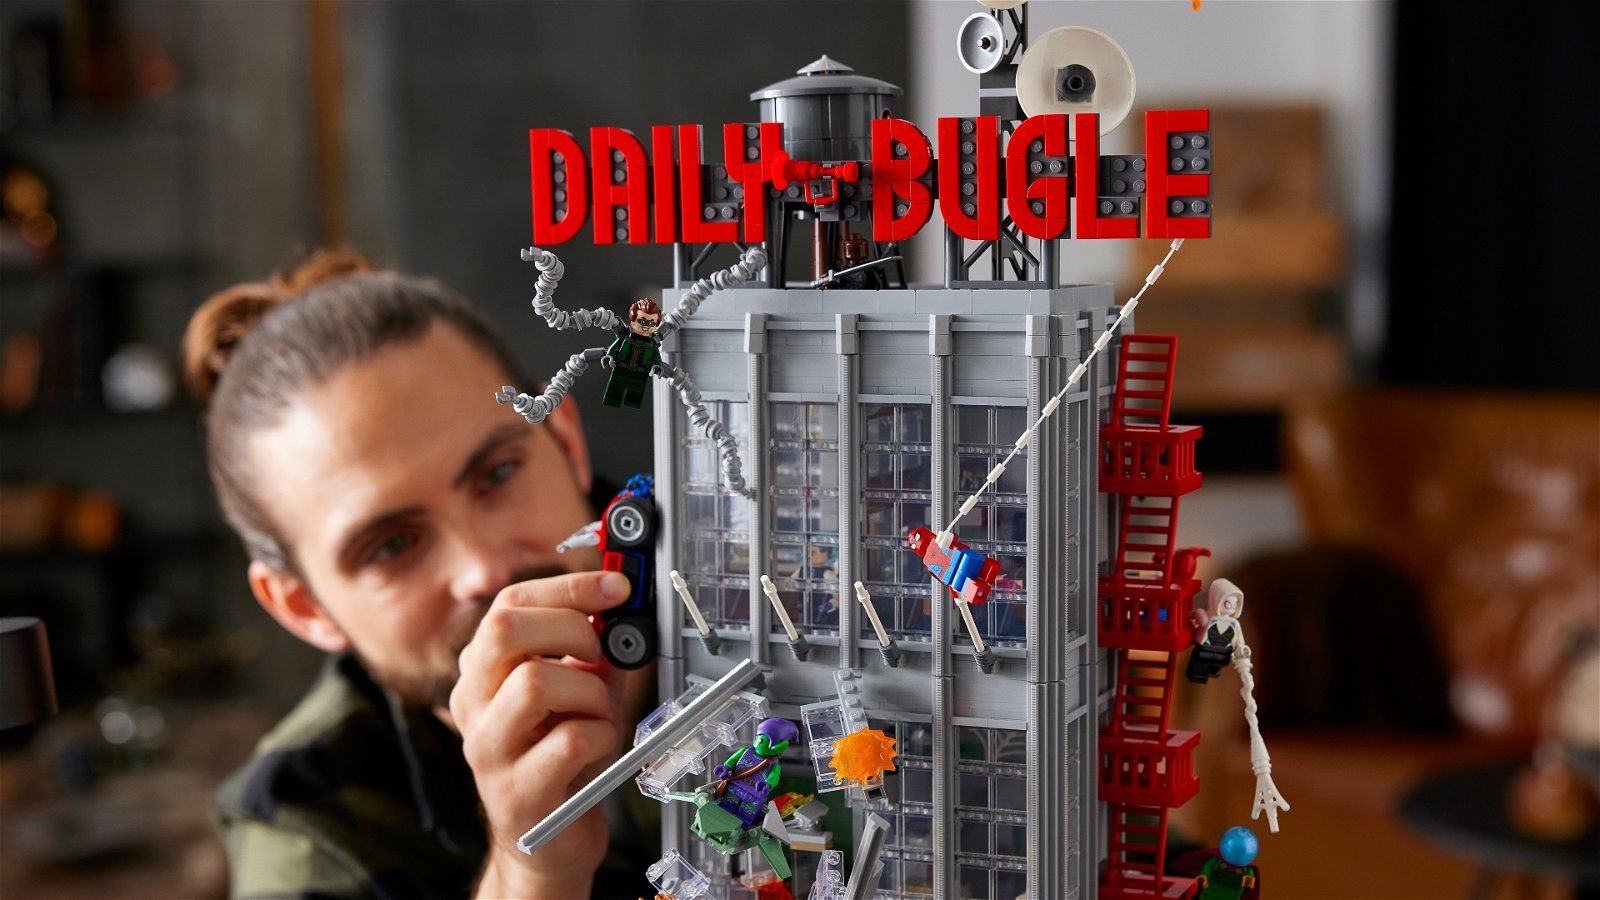 3772-Piece LEGO Set Brings the Daily Bugle to Life 2